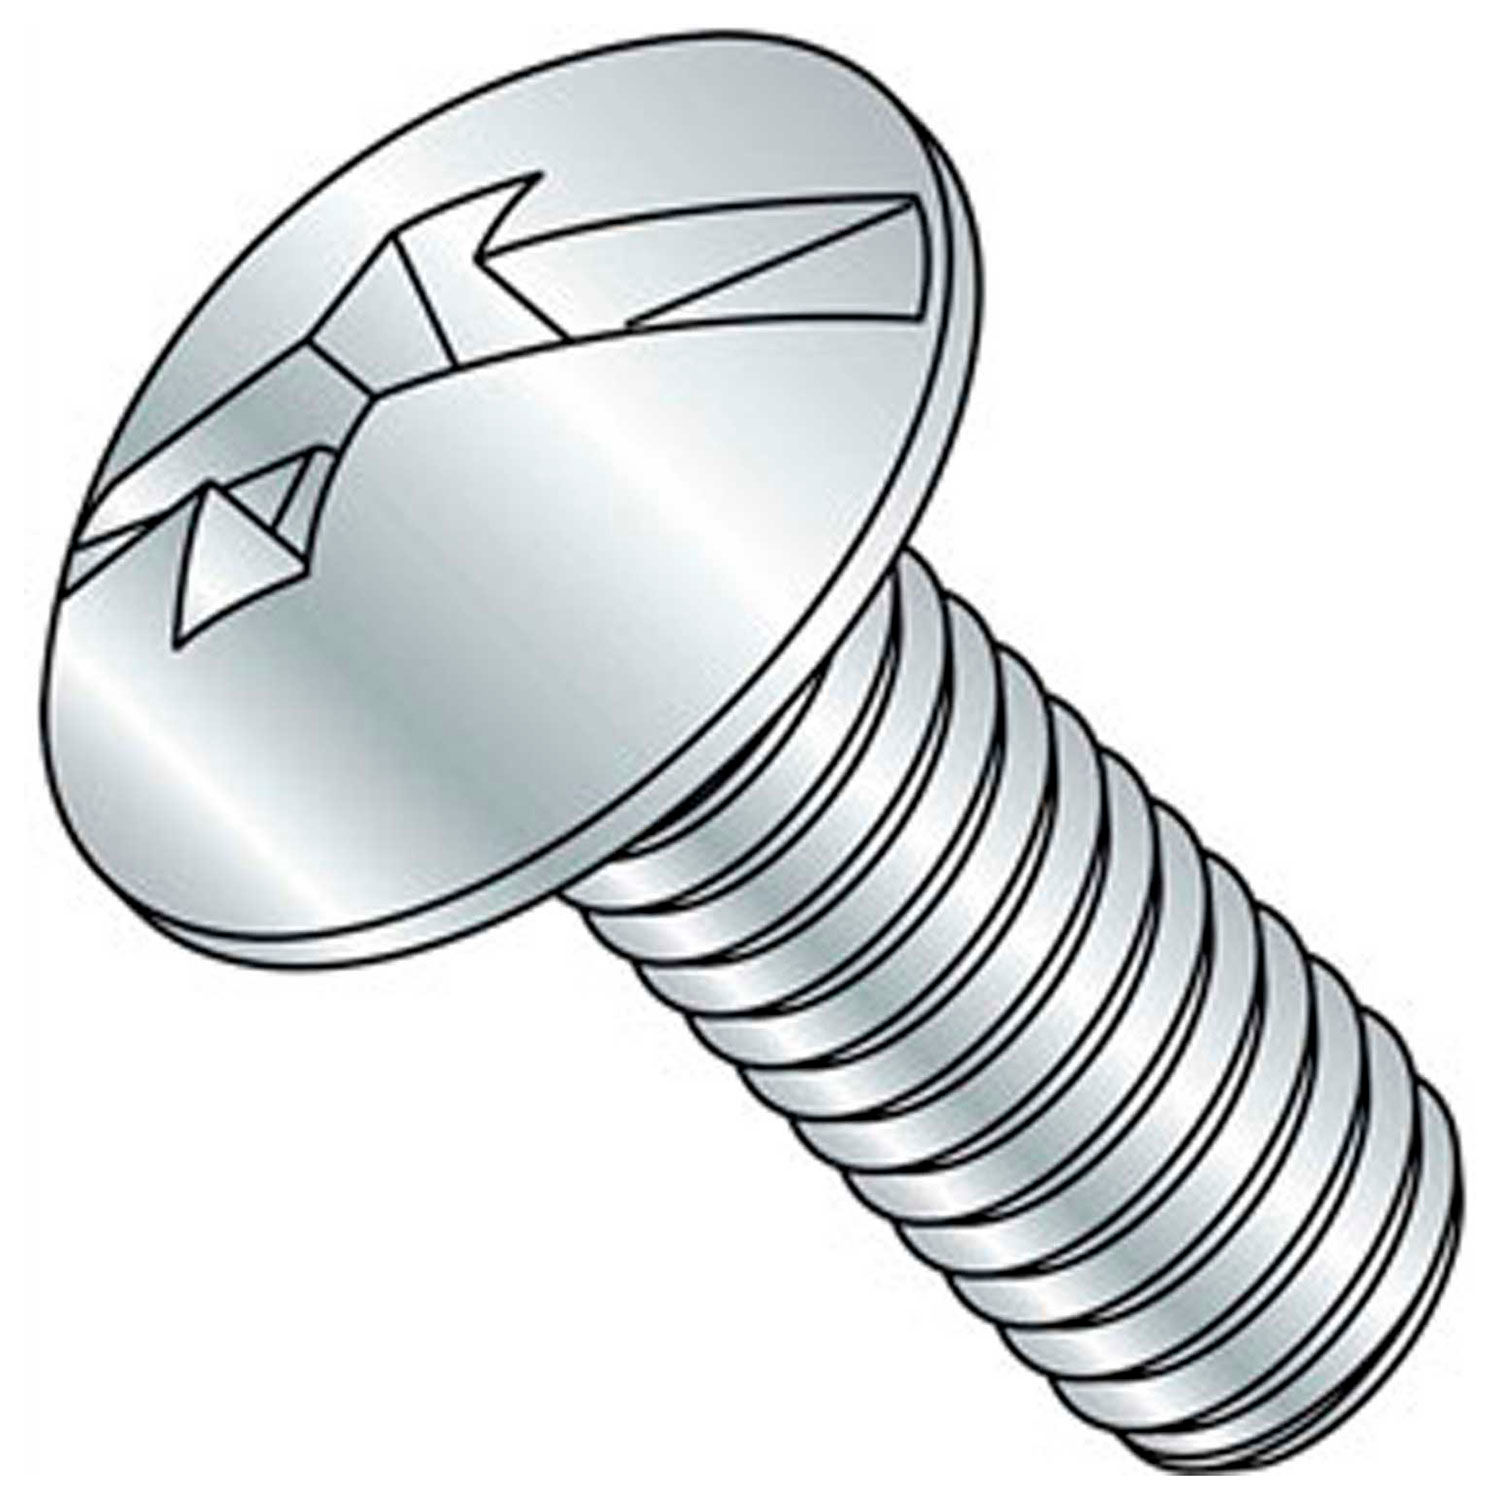 0-80 X 1//4 Slotted Fillister Machine Screw 18-8 Stainless Steel Package Qty 100